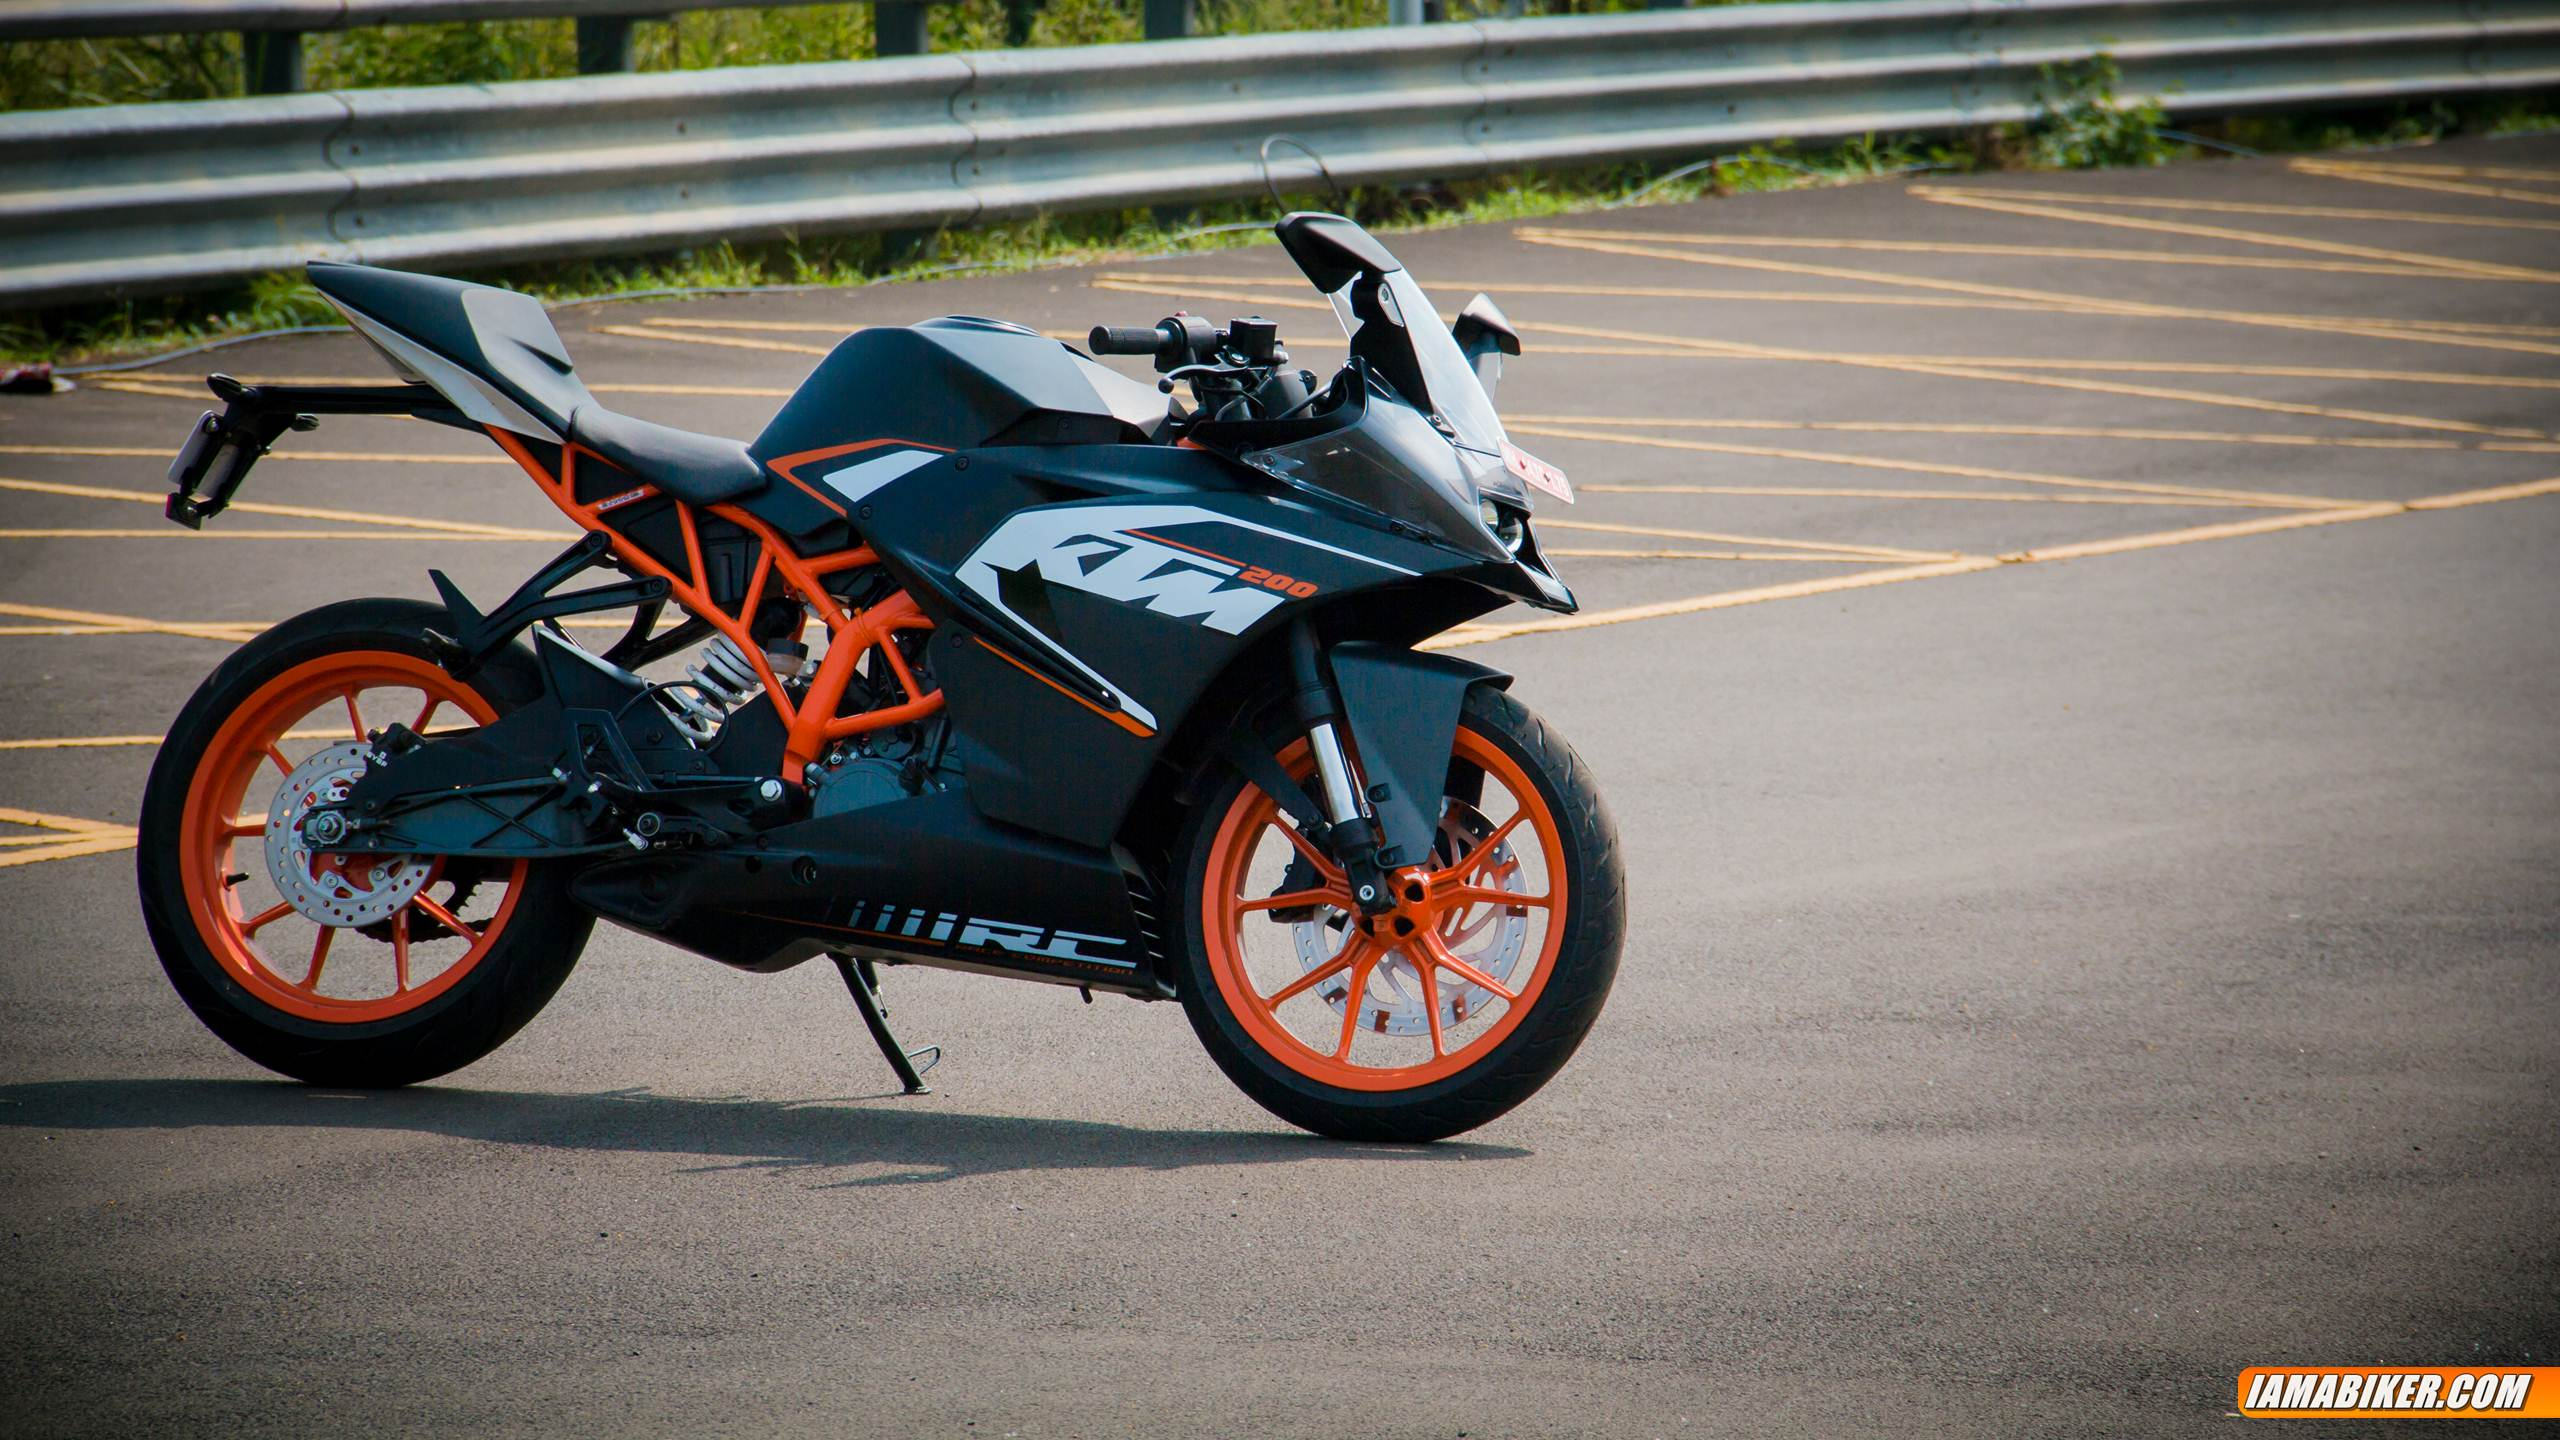 Ktm Rc 200 Hd Wallpapers Wallpaper Cave Ktm Rc Ktm Rc 200 Ktm